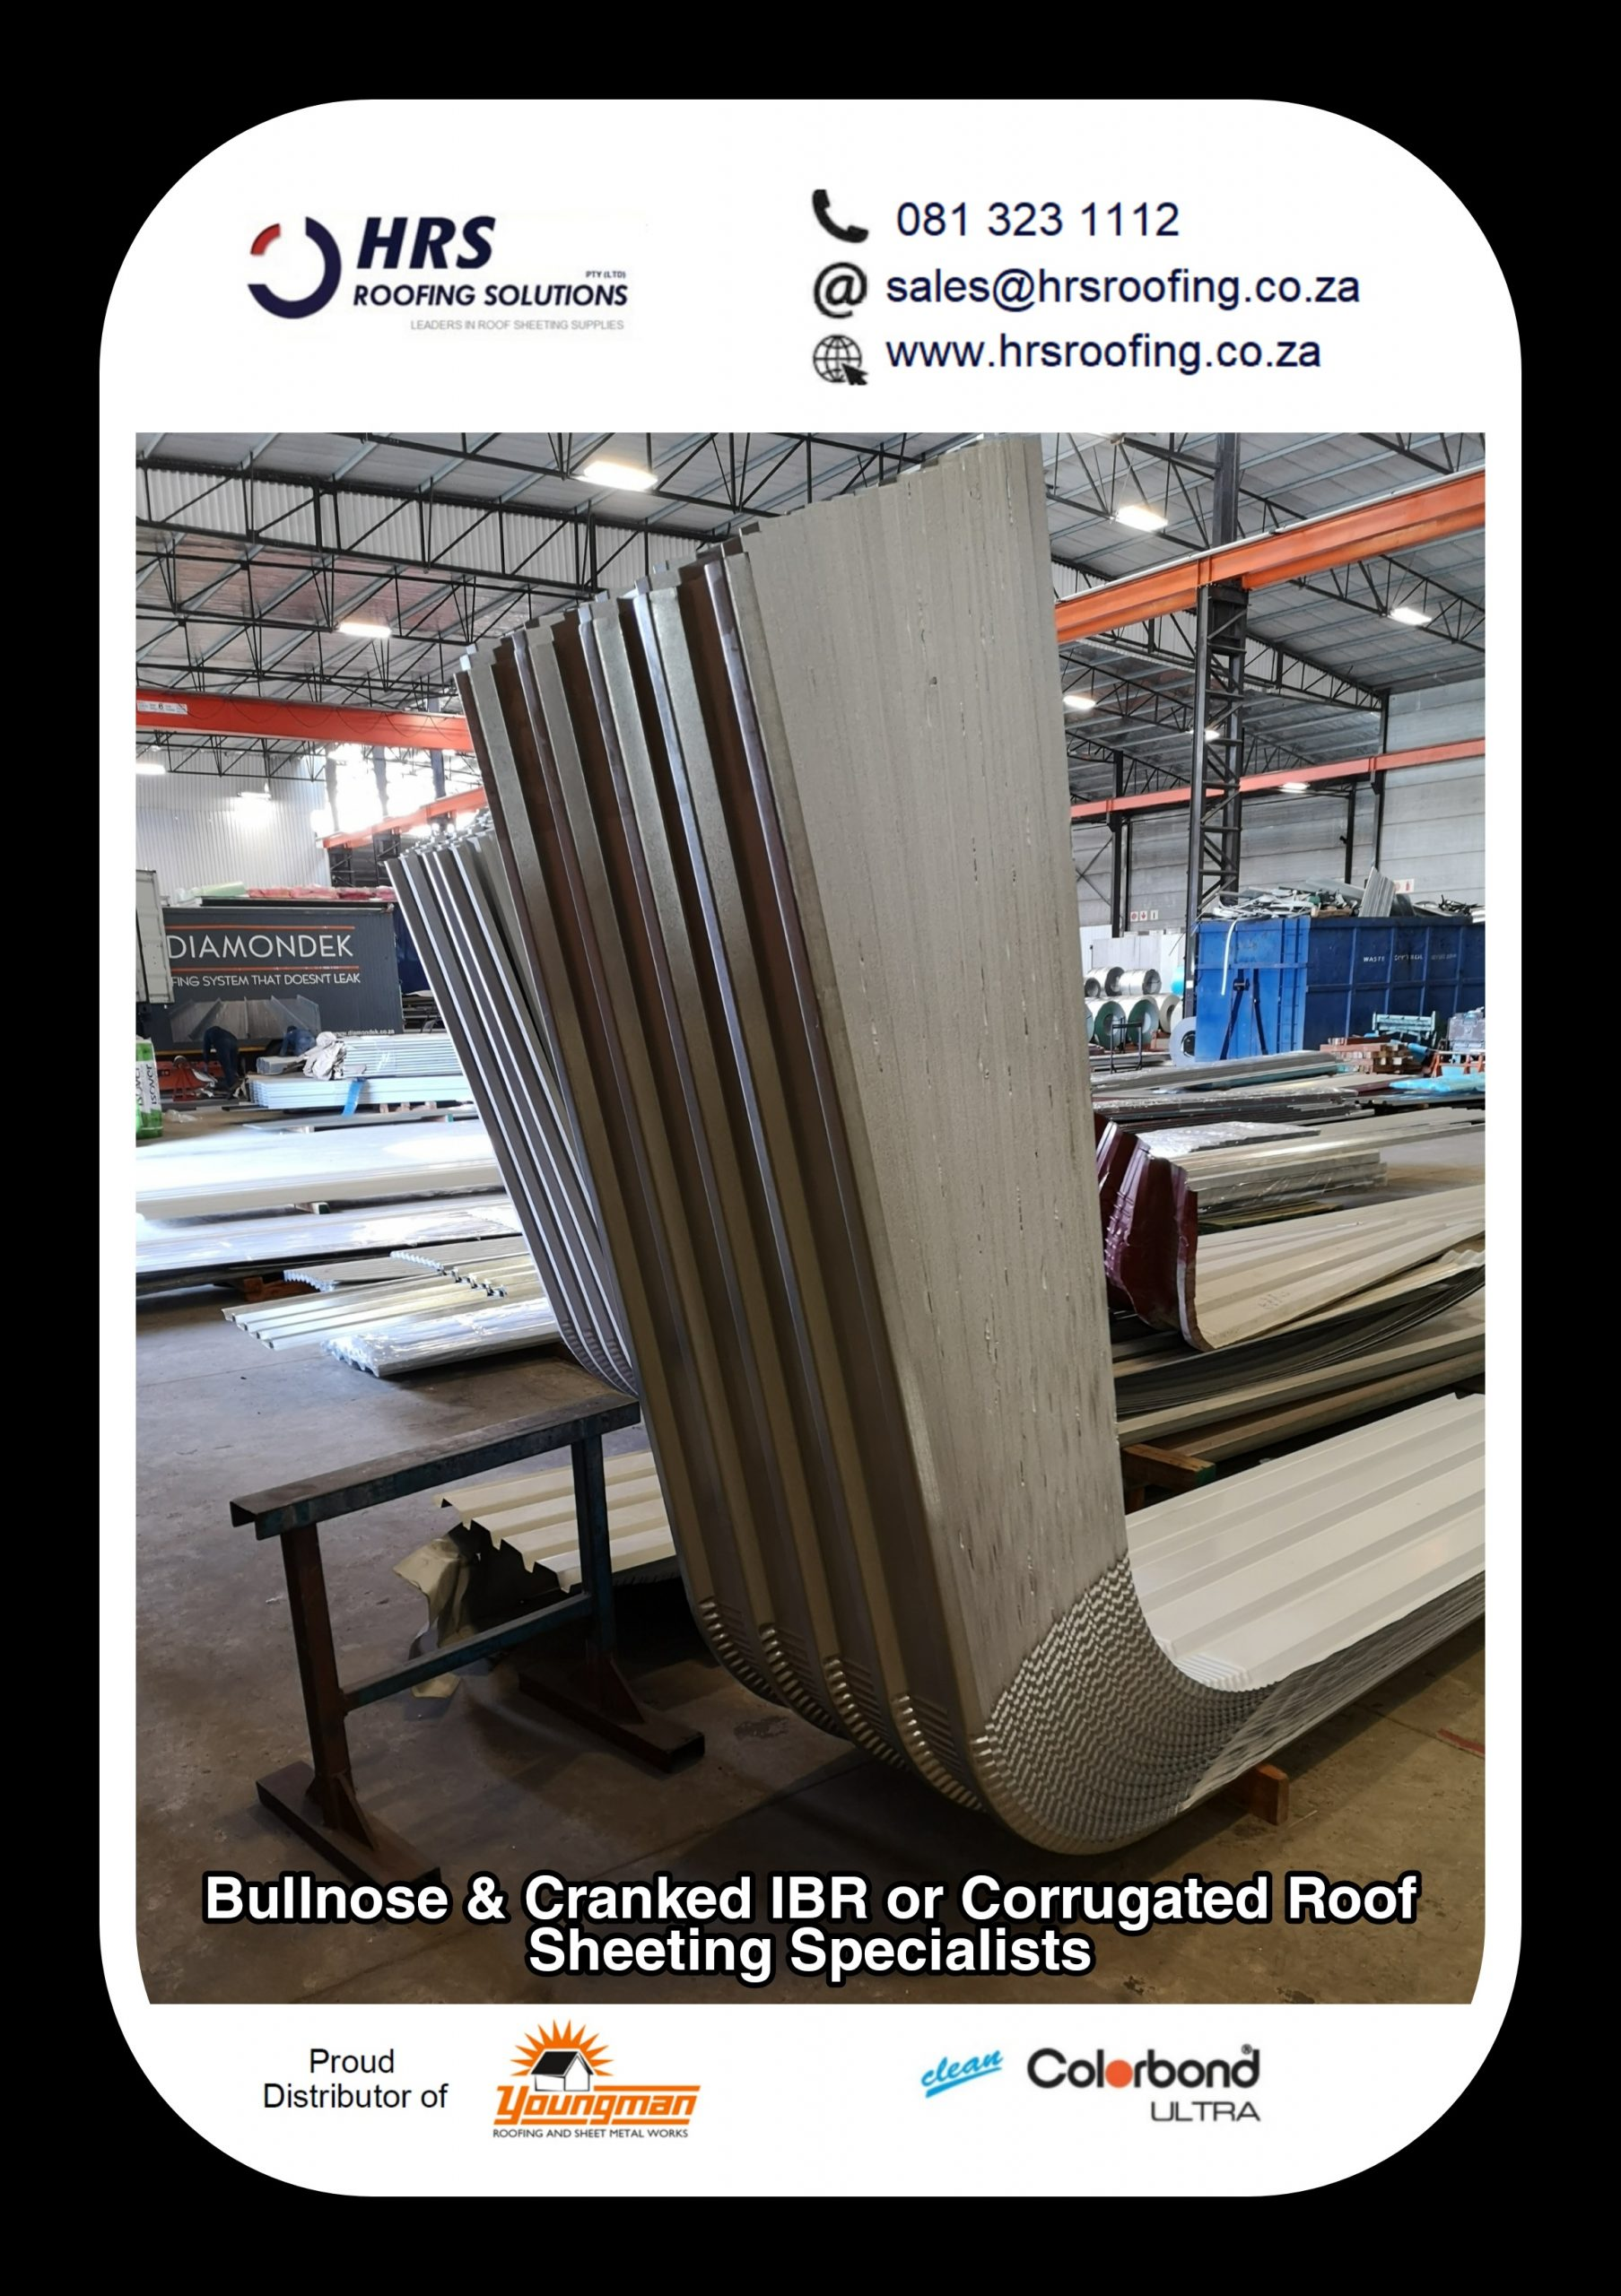 bullnose and cranked roof sheeting cape Town Zincalume Colorbond hrs roofing scaled - Roofing Gallery